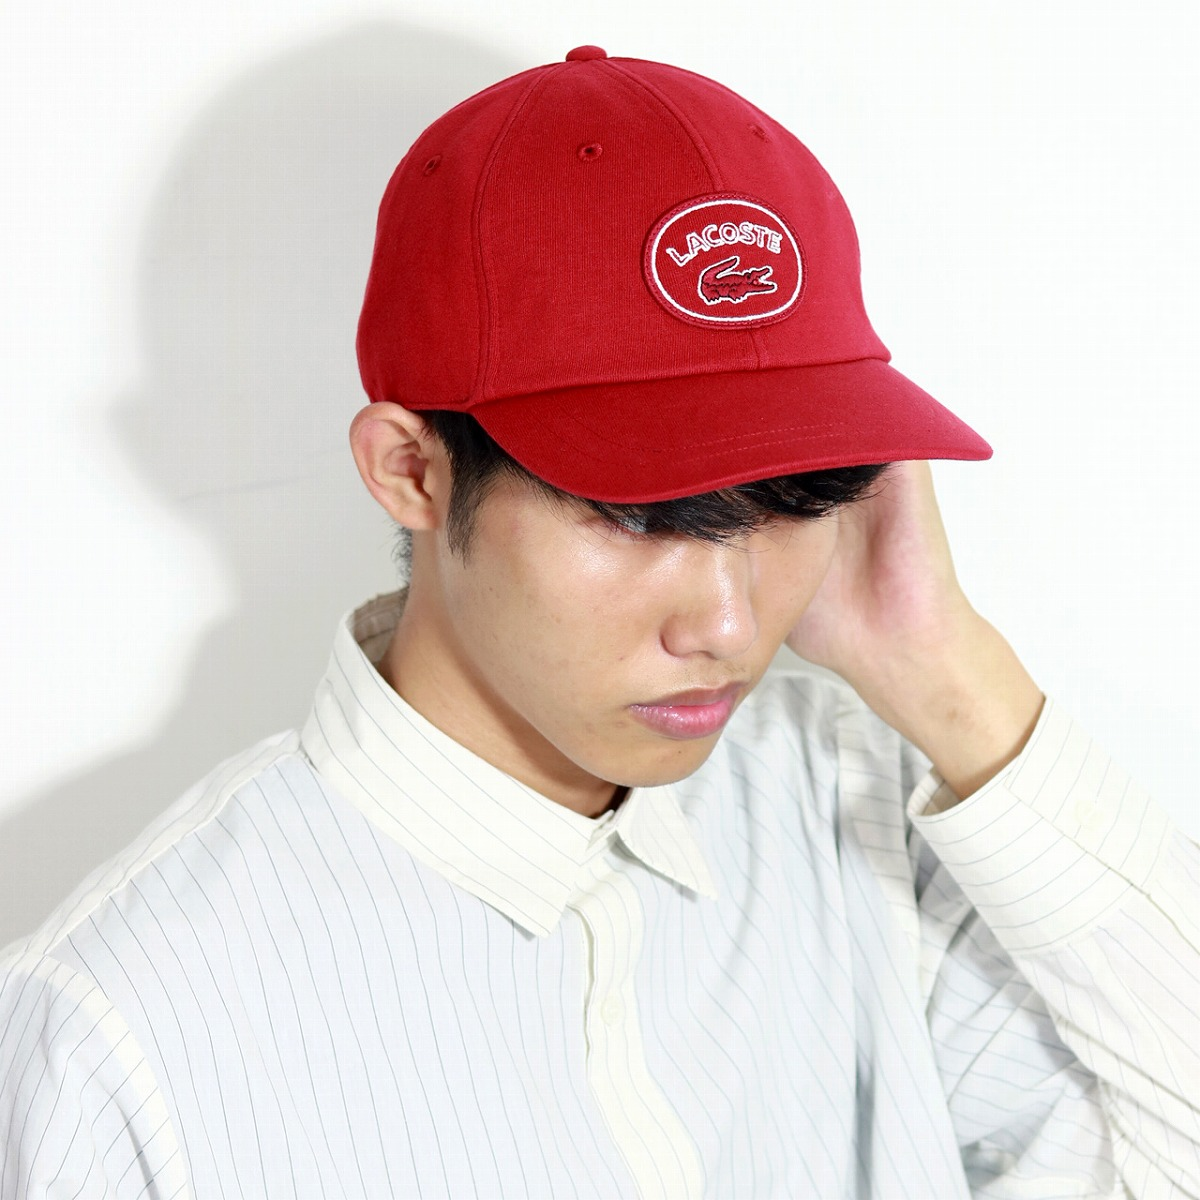 bcbcc546b8d Jersey Lacoste baseball hat cap Lady s   red red made in hat men  ultraviolet rays measures LACOSTE cap men CAP Japan in the fall and winter